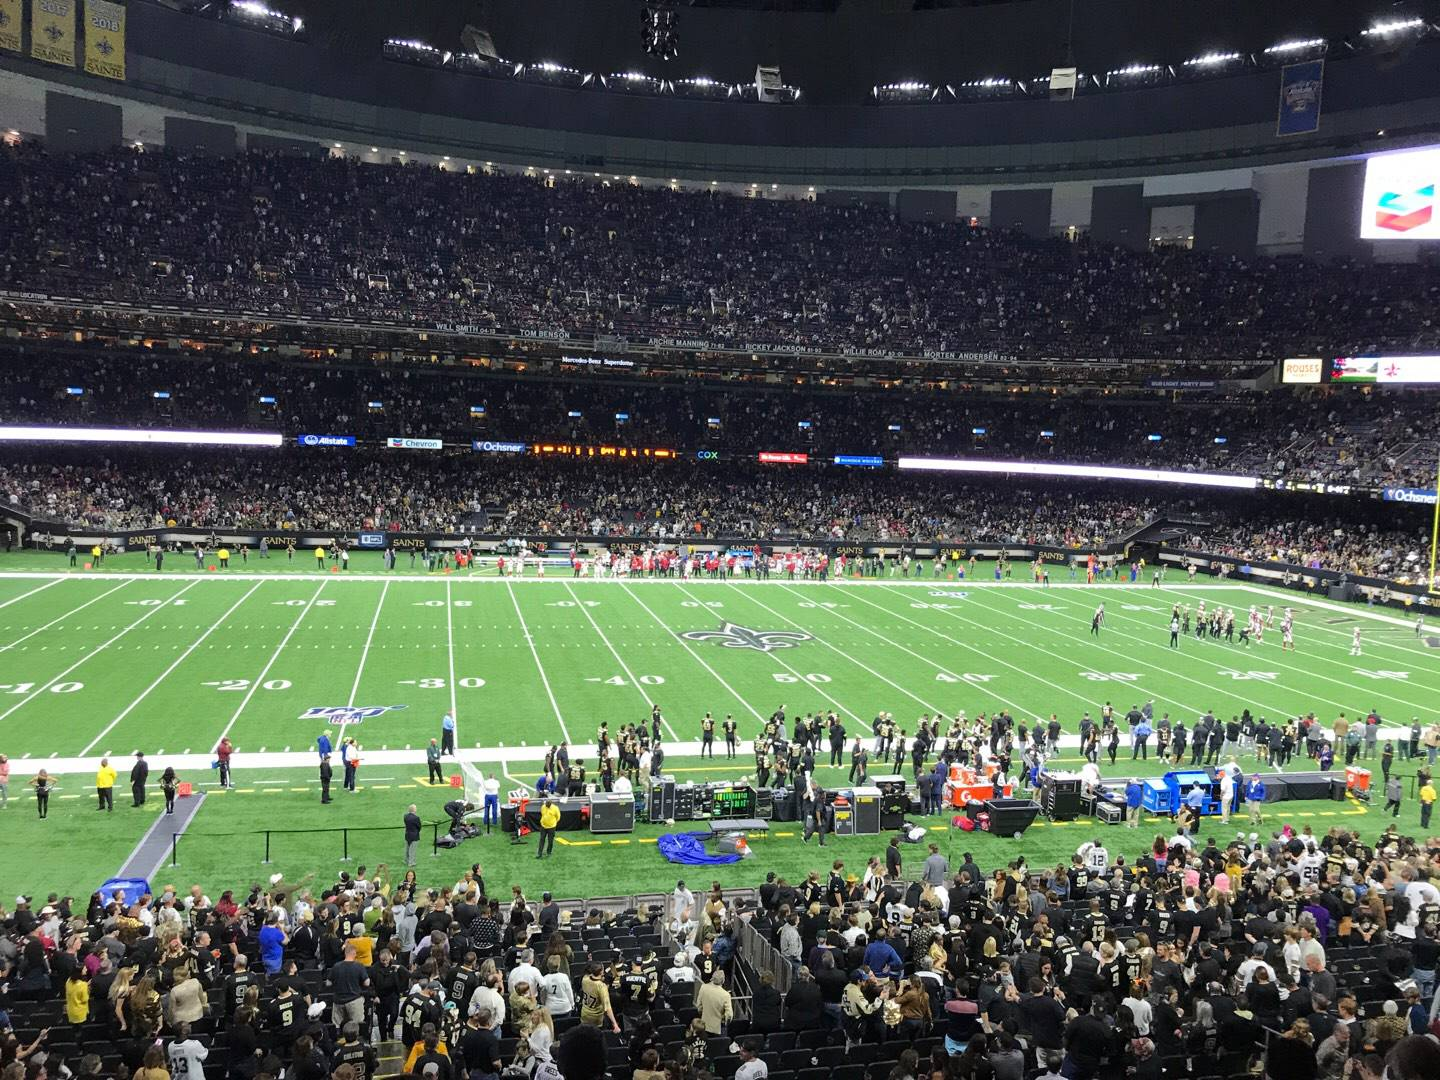 Mercedes-Benz Superdome Section 338 Row 9 Seat 5